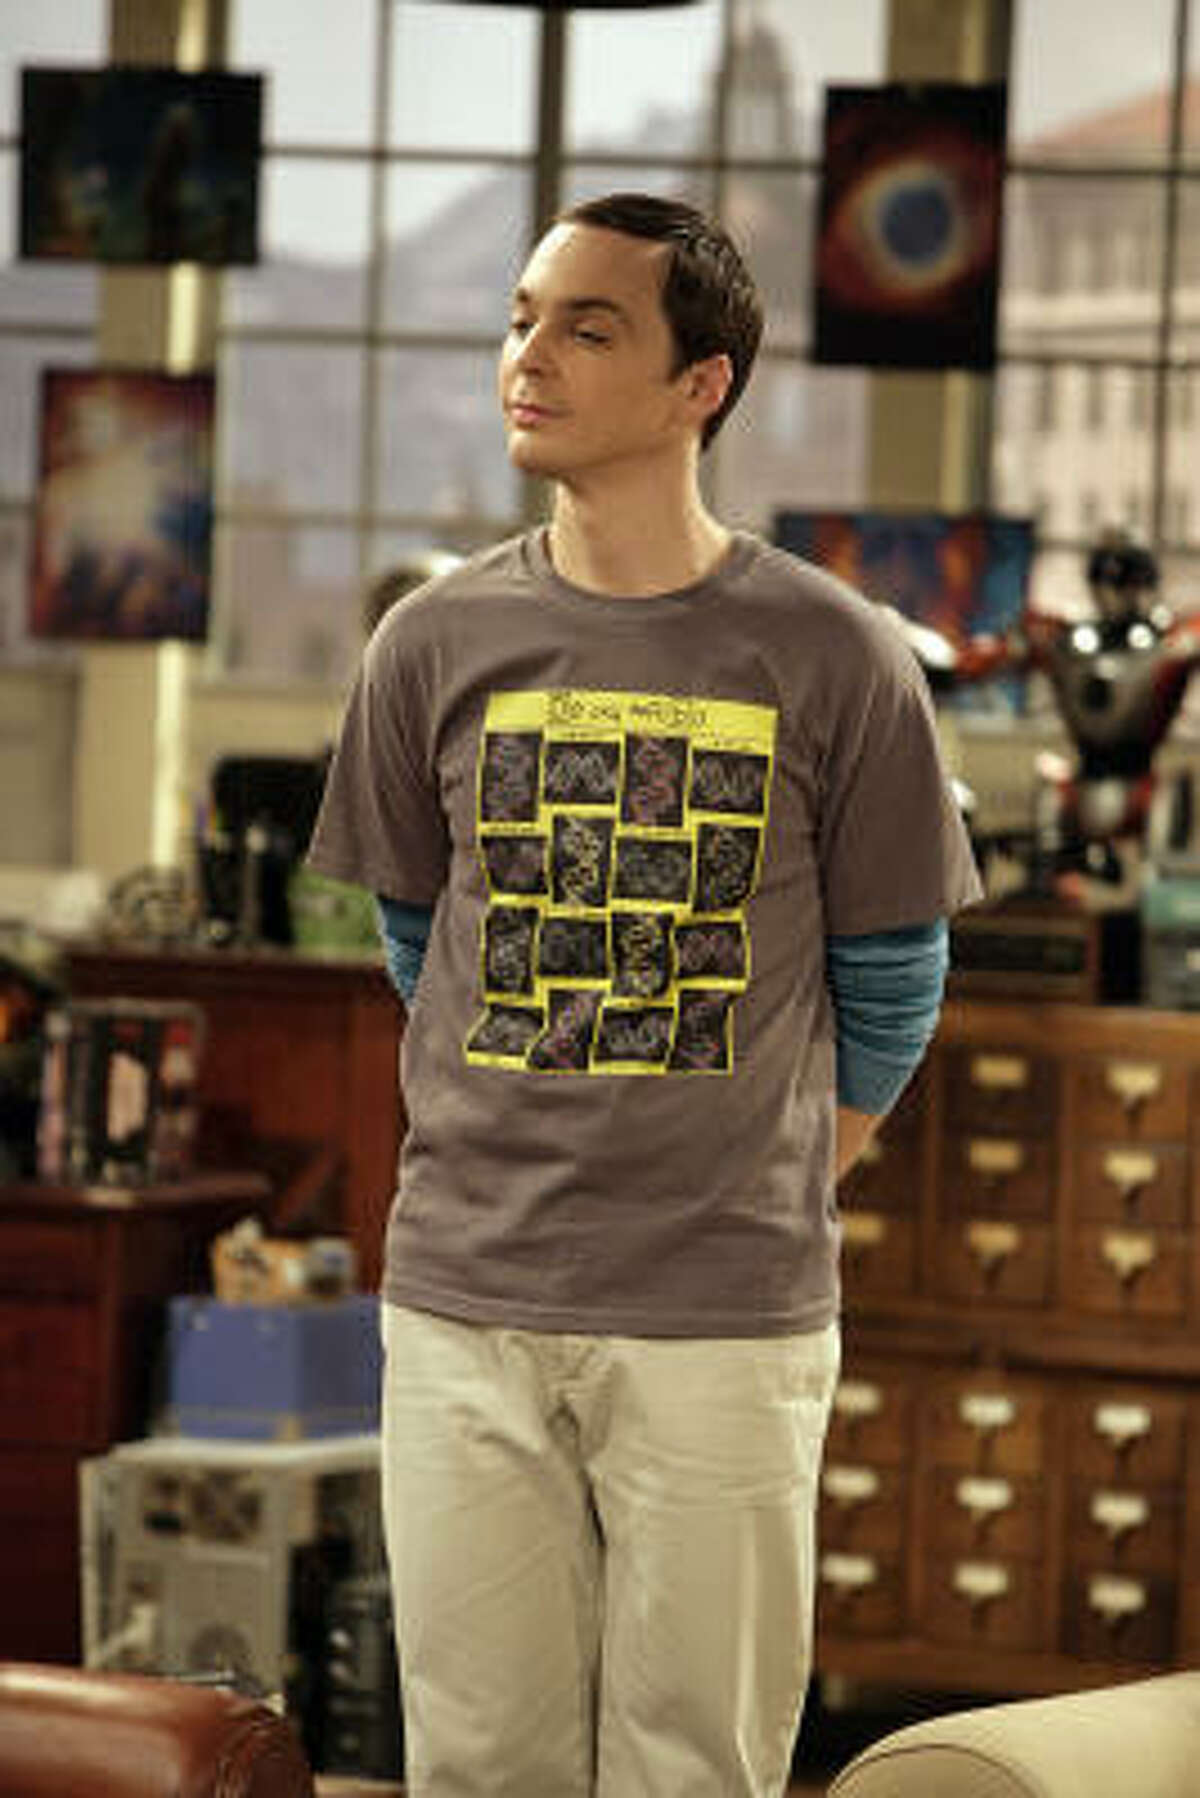 Jim Parsons plays Sheldon Cooper, a neurotic and socially awkward physicist in The Big Bang Theory.